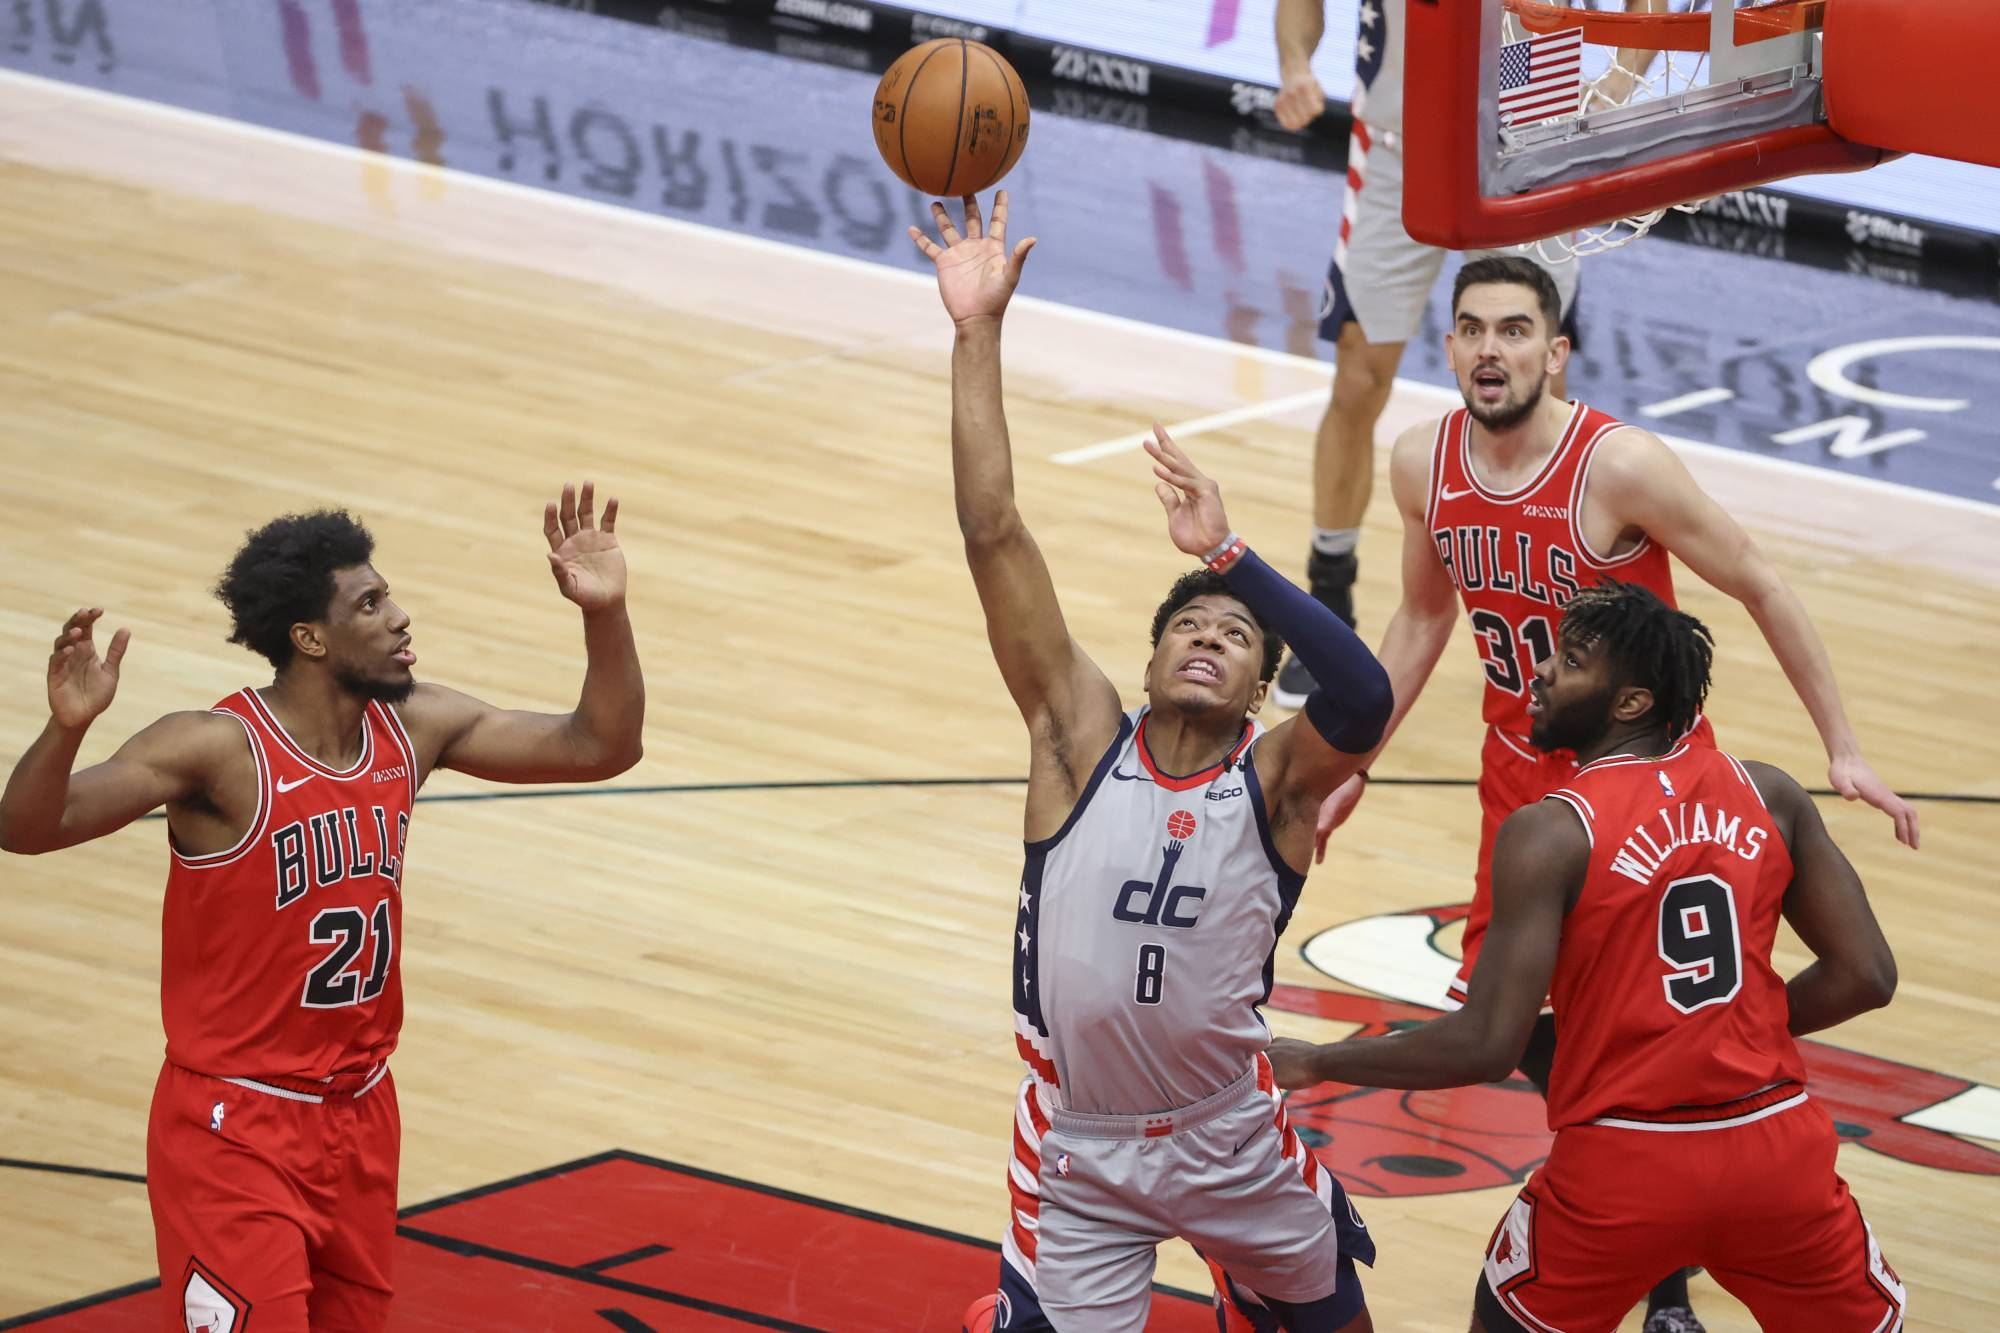 Washington Wizards forward Rui Hachimura shoots against Chicago Bulls forward Patrick Williams during the second half at United Center in Chicago on Monday. | KAMIL KRZACZYNSKI / USA TODAY VIA REUTERS